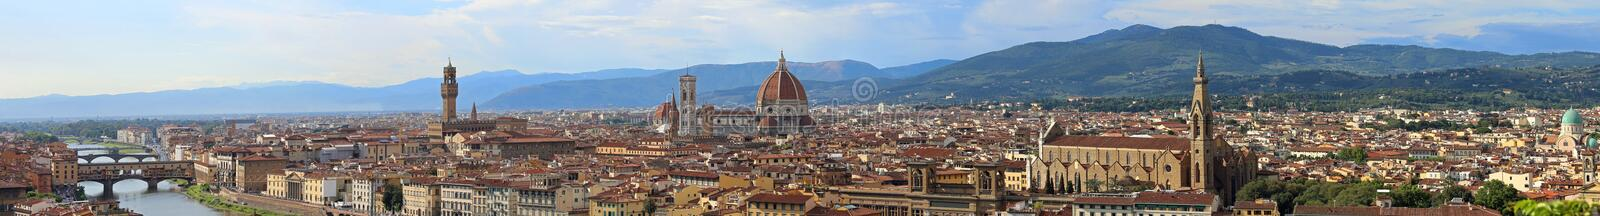 Florence Italy Incredible Stitched Panorama royalty free stock photography